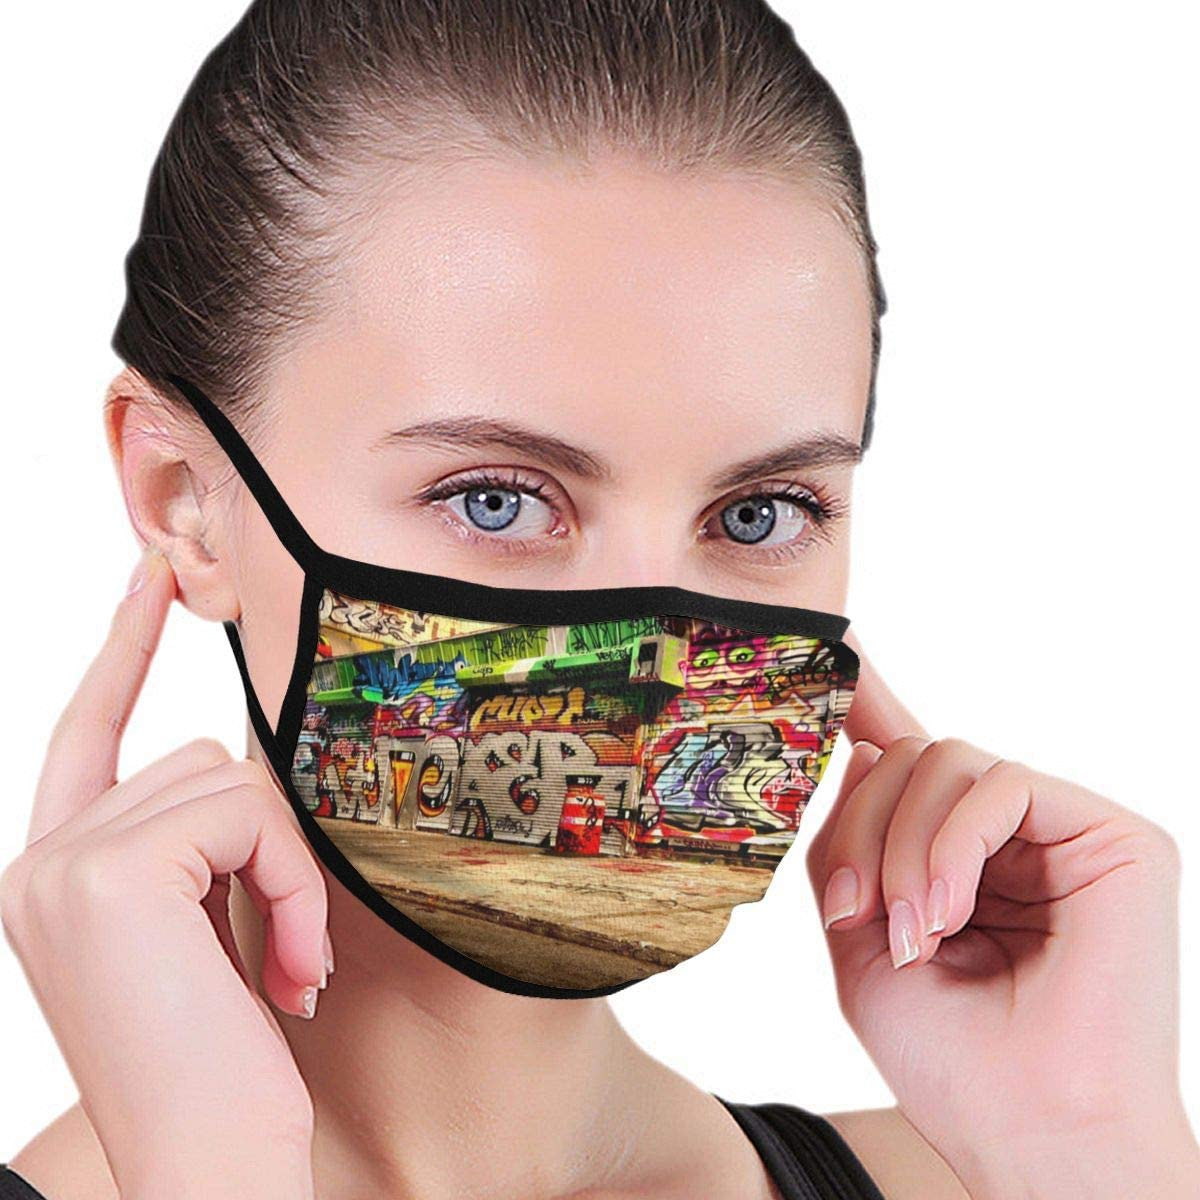 Doumku Mouth Cover Vintage Street Graffiti Art Dust Breathable Reusable Ear Loop Mouth Protection Cover For Men Women